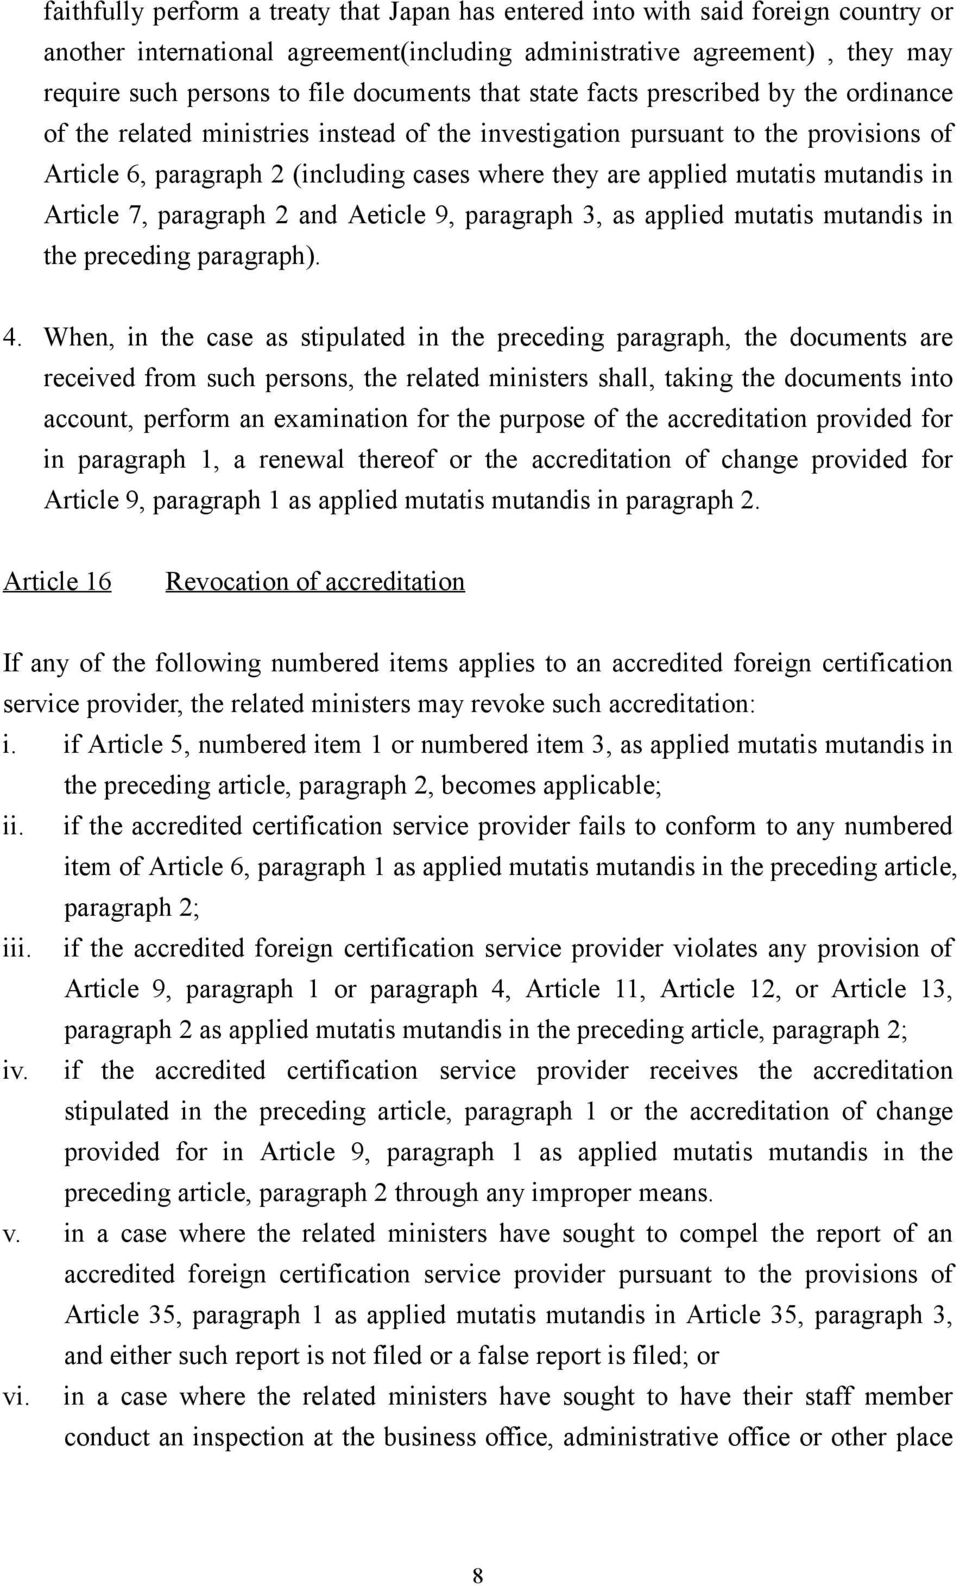 applied mutatis mutandis in Article 7, paragraph 2 and Aeticle 9, paragraph 3, as applied mutatis mutandis in the preceding paragraph). 4.